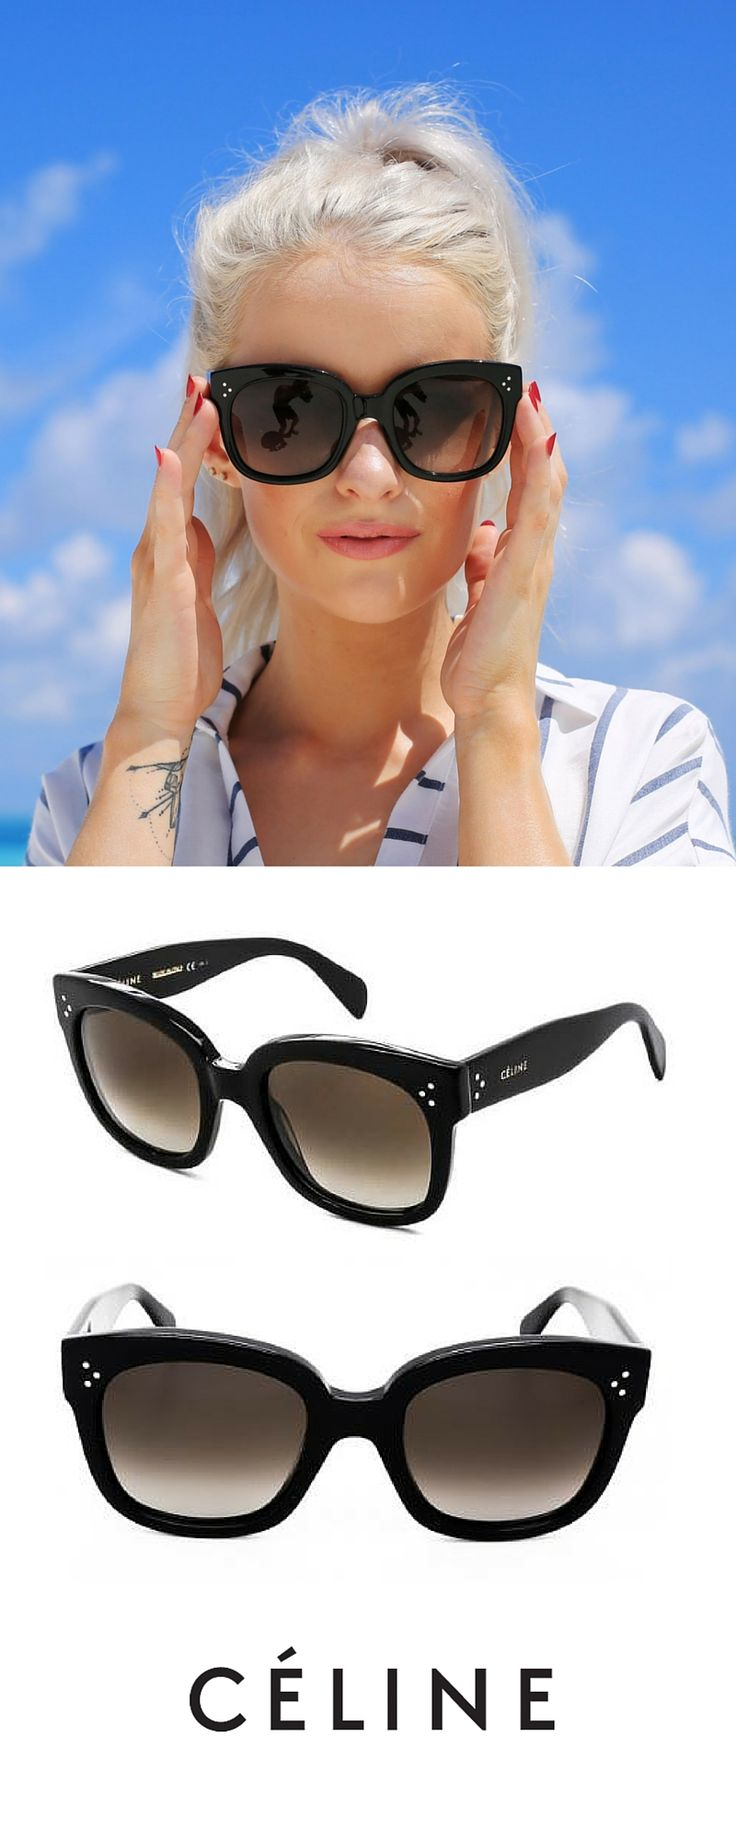 06c1f08861d New Celine Sunglasses